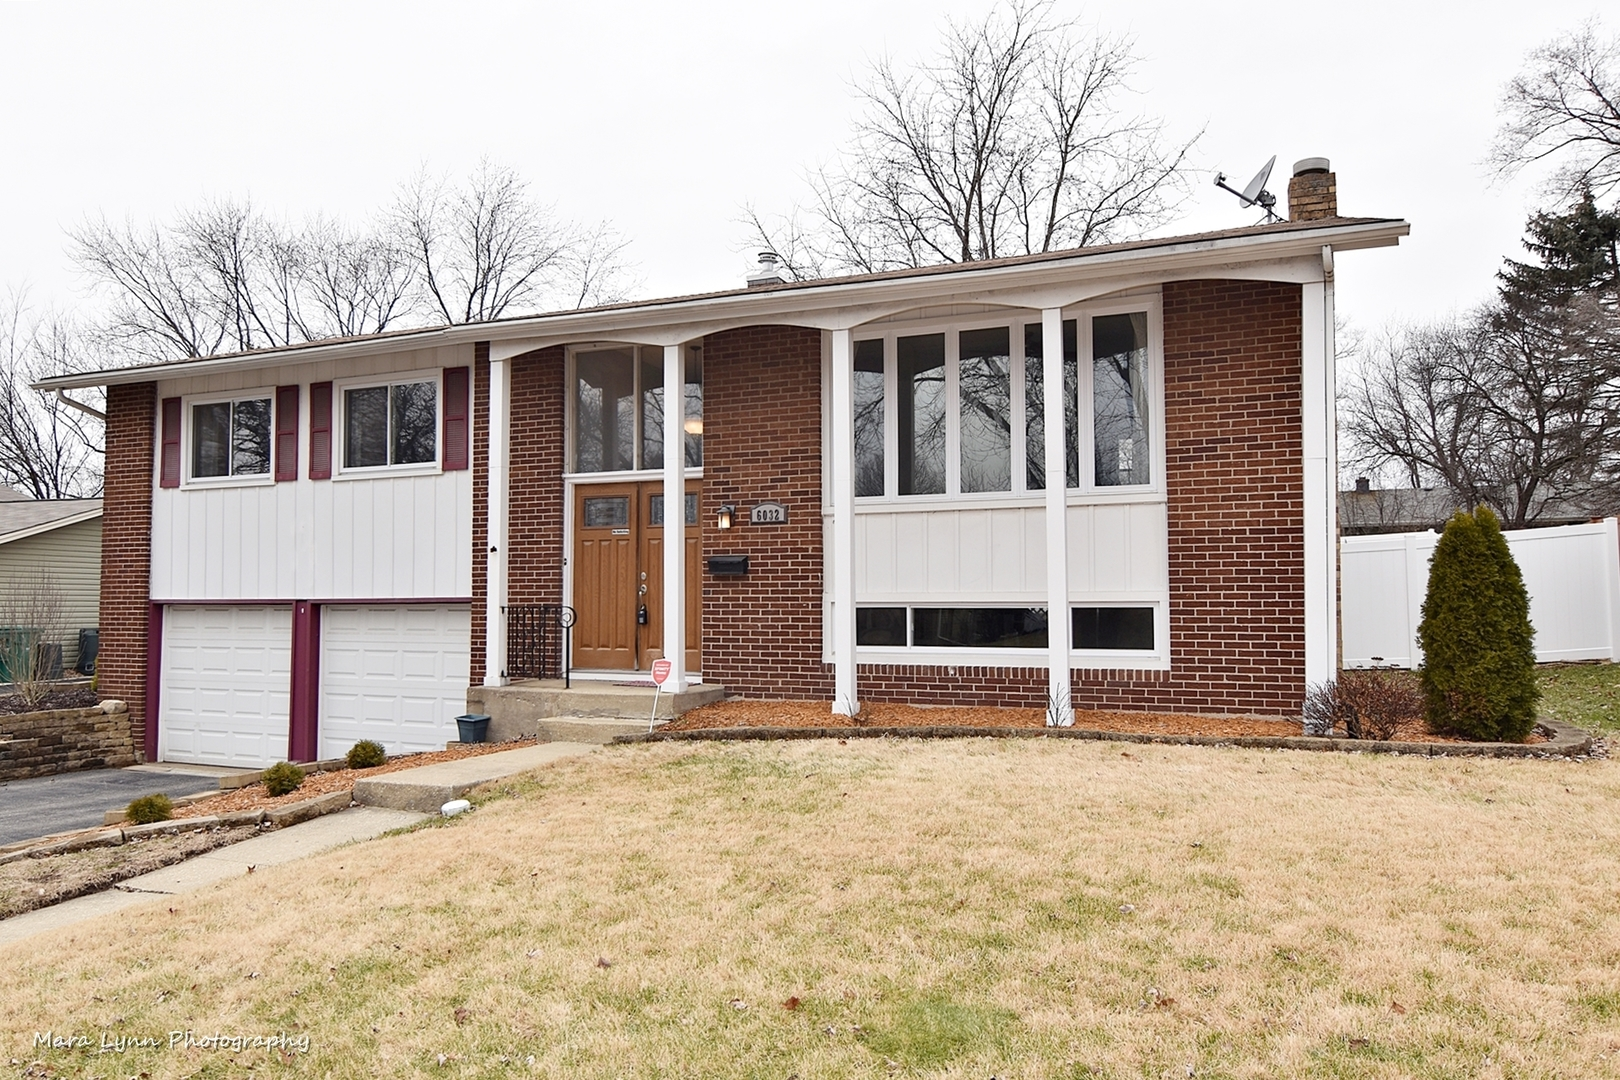 6032 Ridgeway Drive Geneva, St. Charles, Batavia, South Elgin, Elburn, Elgin, North Aurora, Aurora  Home Listings - The Cory Jones Team - RE/MAX Great American North Geneva, St. Charles, Batavia Real Estate Agent